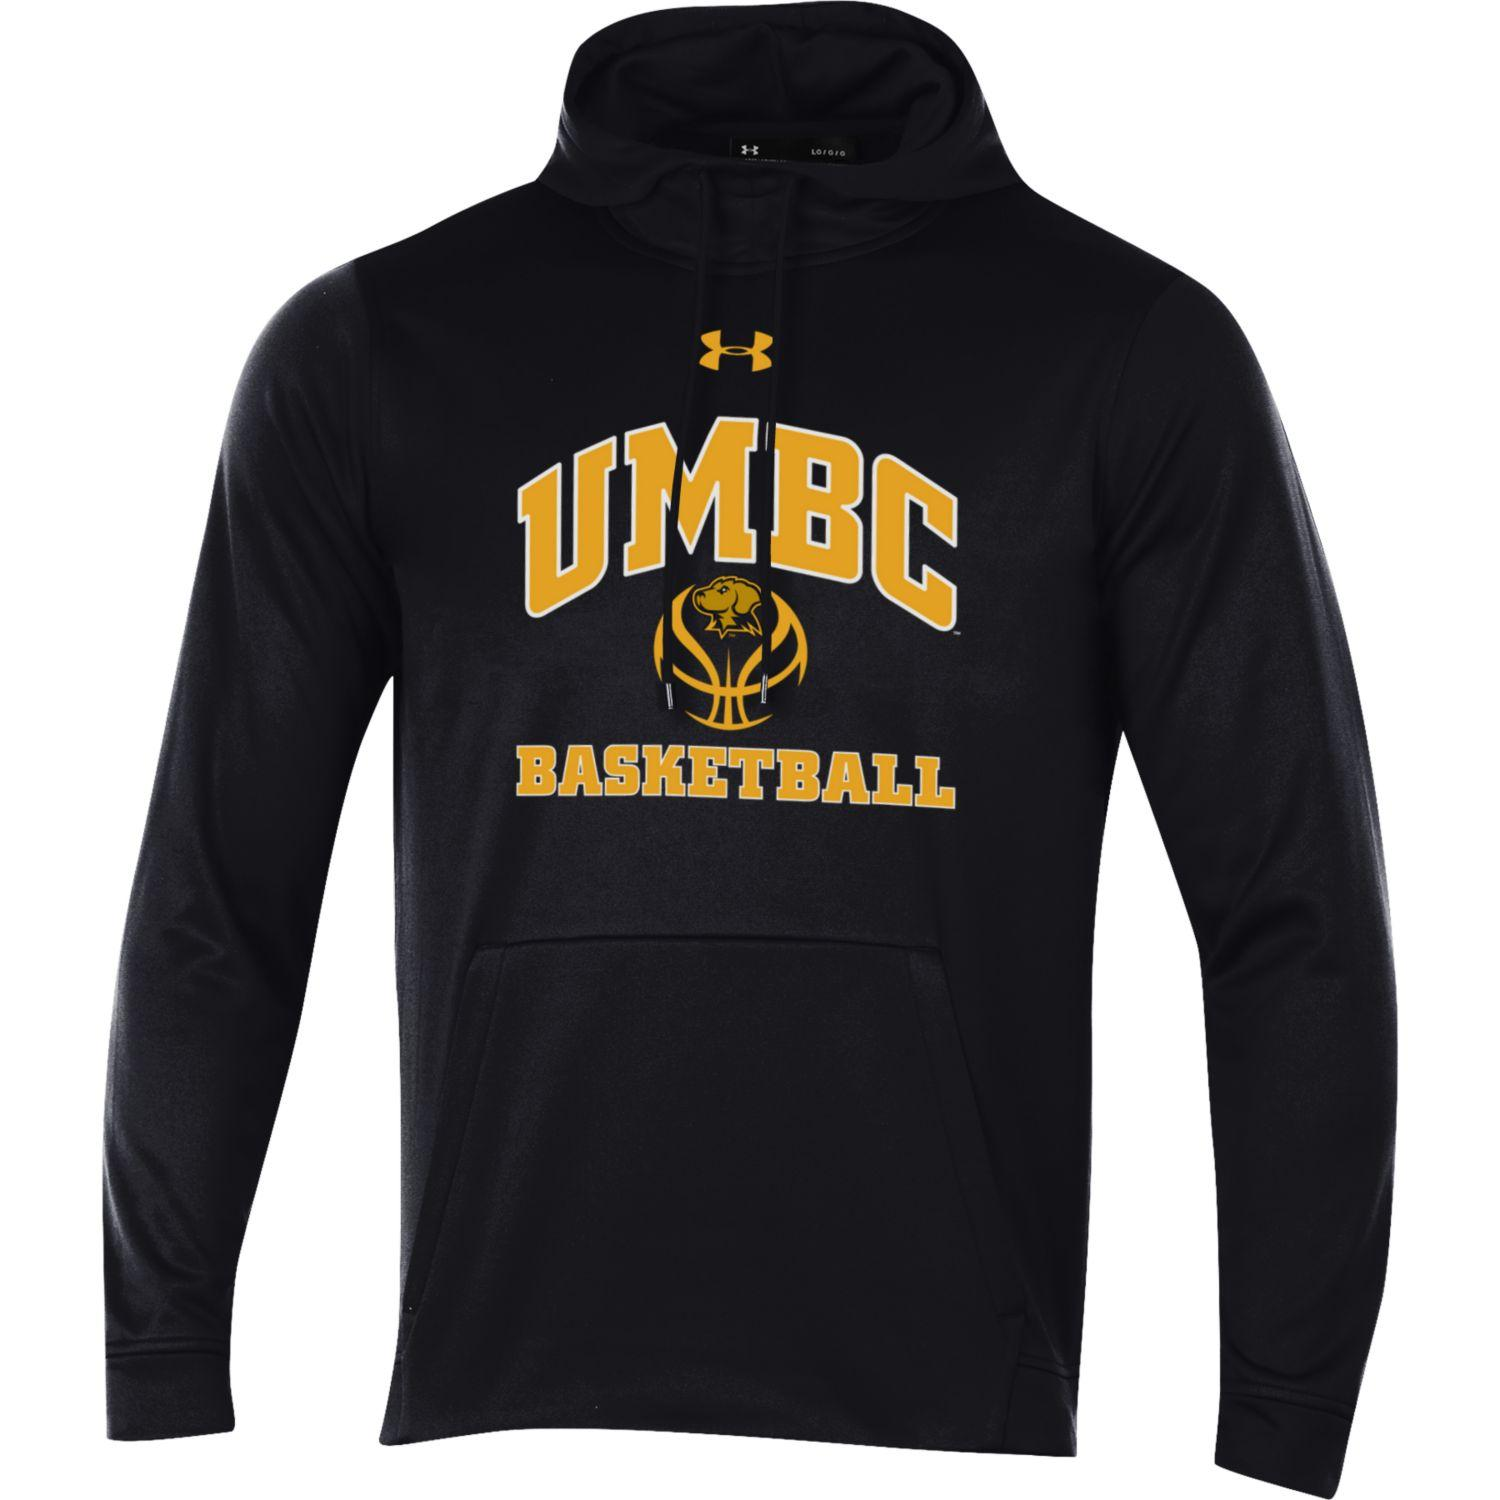 89b8cecdd BASKETBALL UNDER ARMOUR HOODED SWEATSHIRT. Item Description. Manufacturer: Under  Armour Color: Black 100% Polyester Loose fit